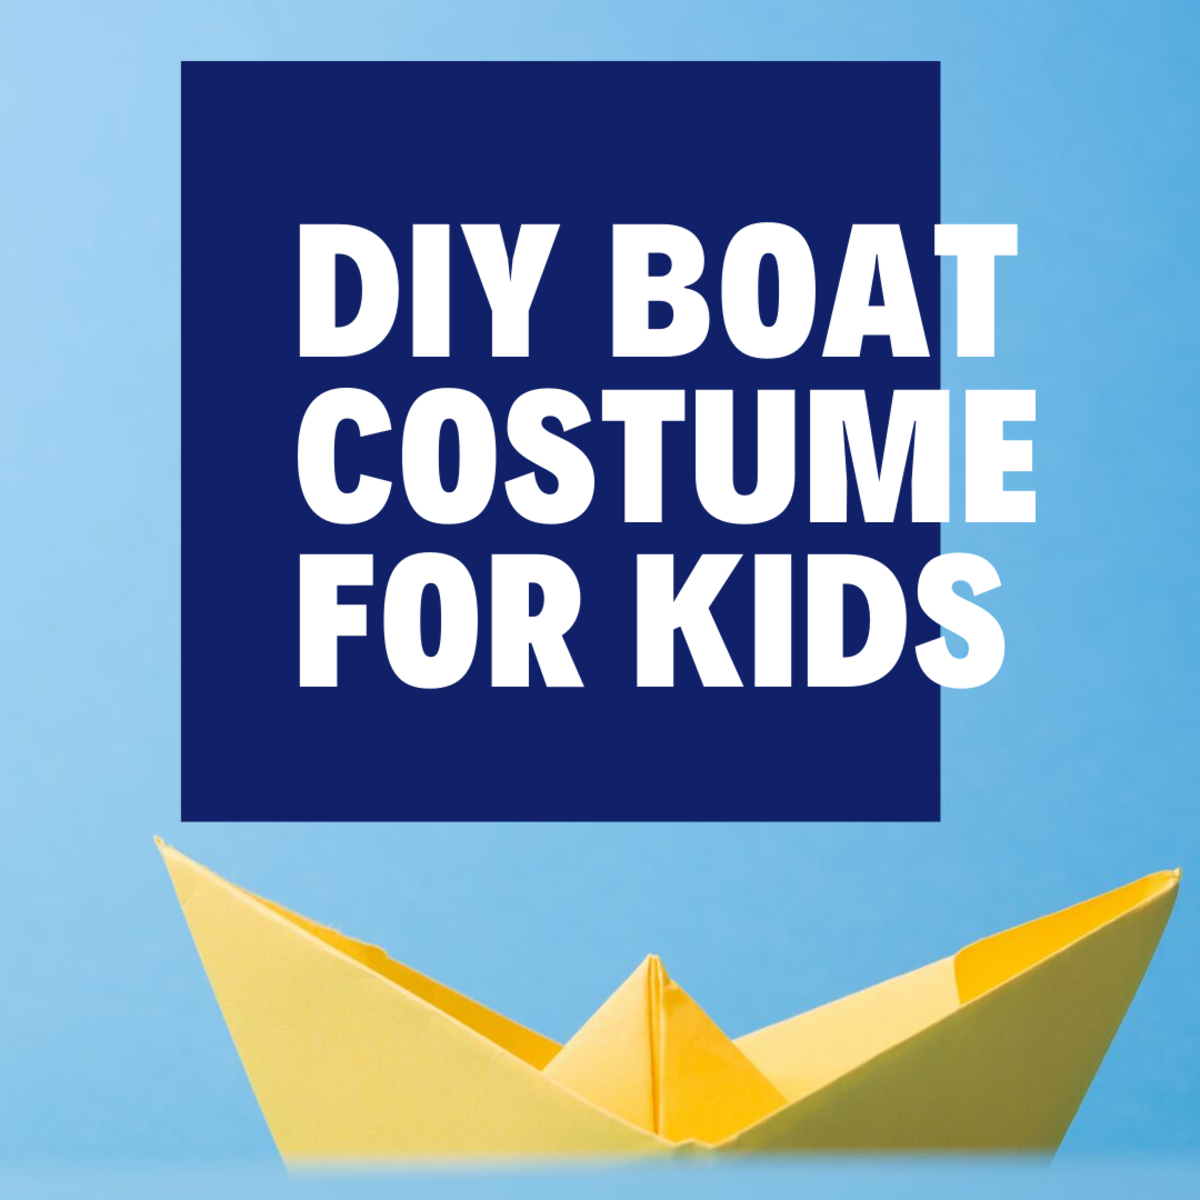 DIY Boat Costume for Kids